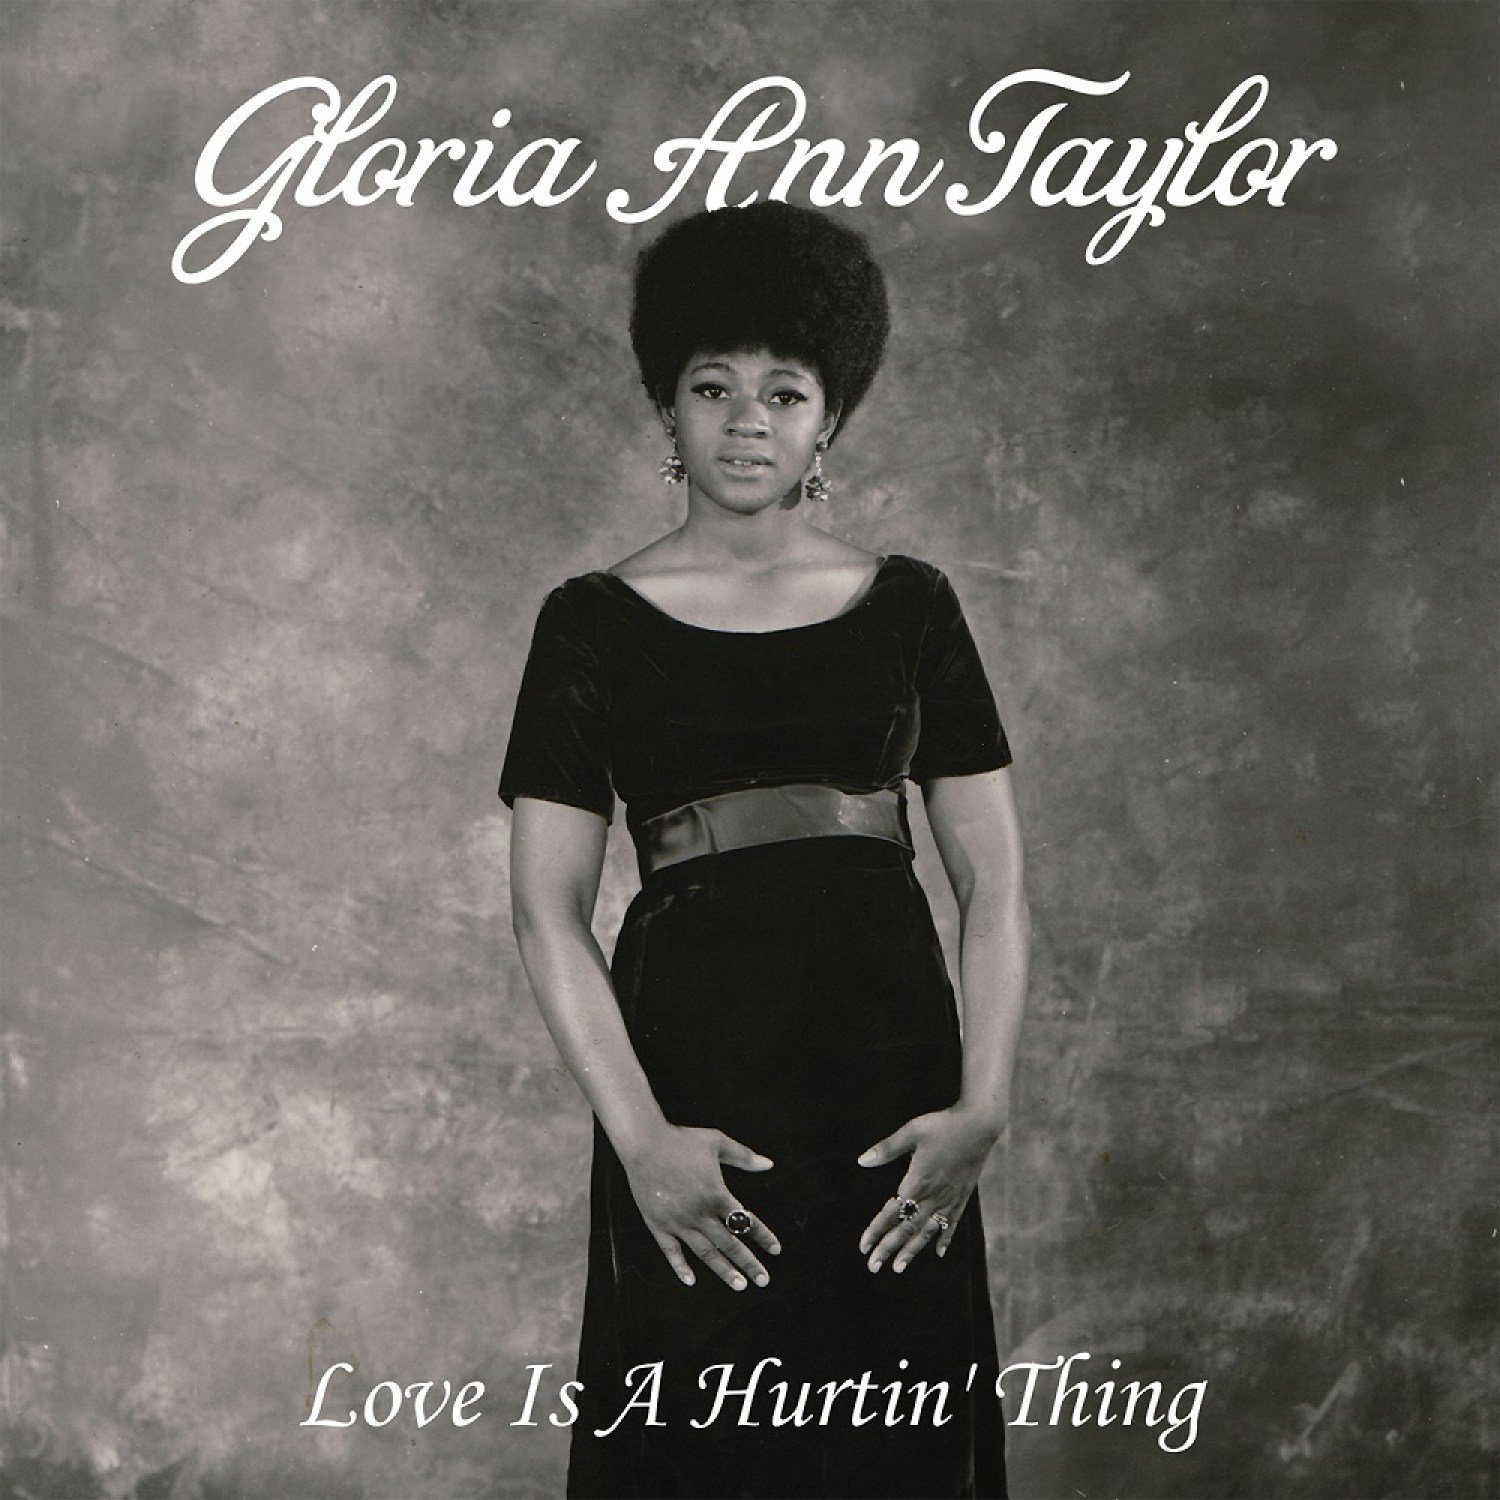 Gloria Ann Taylor <i>Love Is A Hurtin' Thing</i>